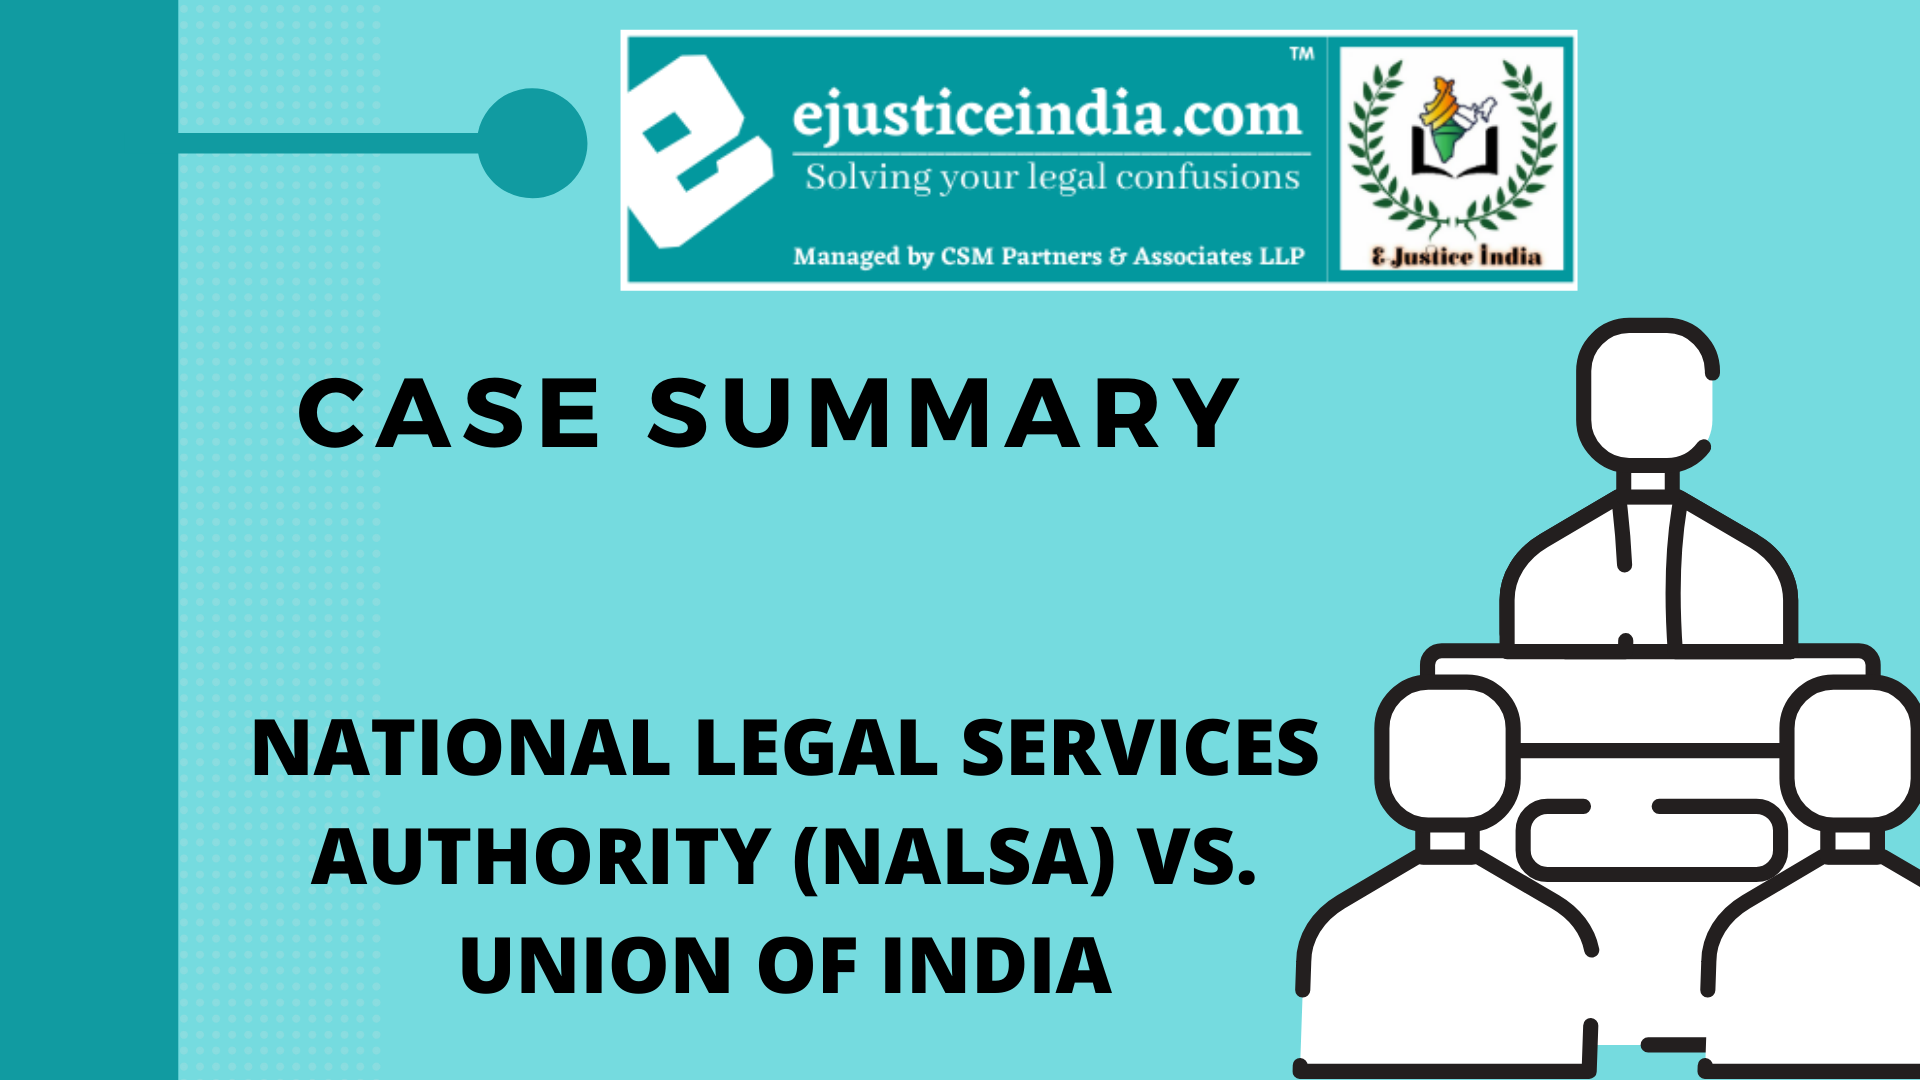 NATIONAL LEGAL SERVICES AUTHORITY (NALSA) VS. UNION OF INDIA